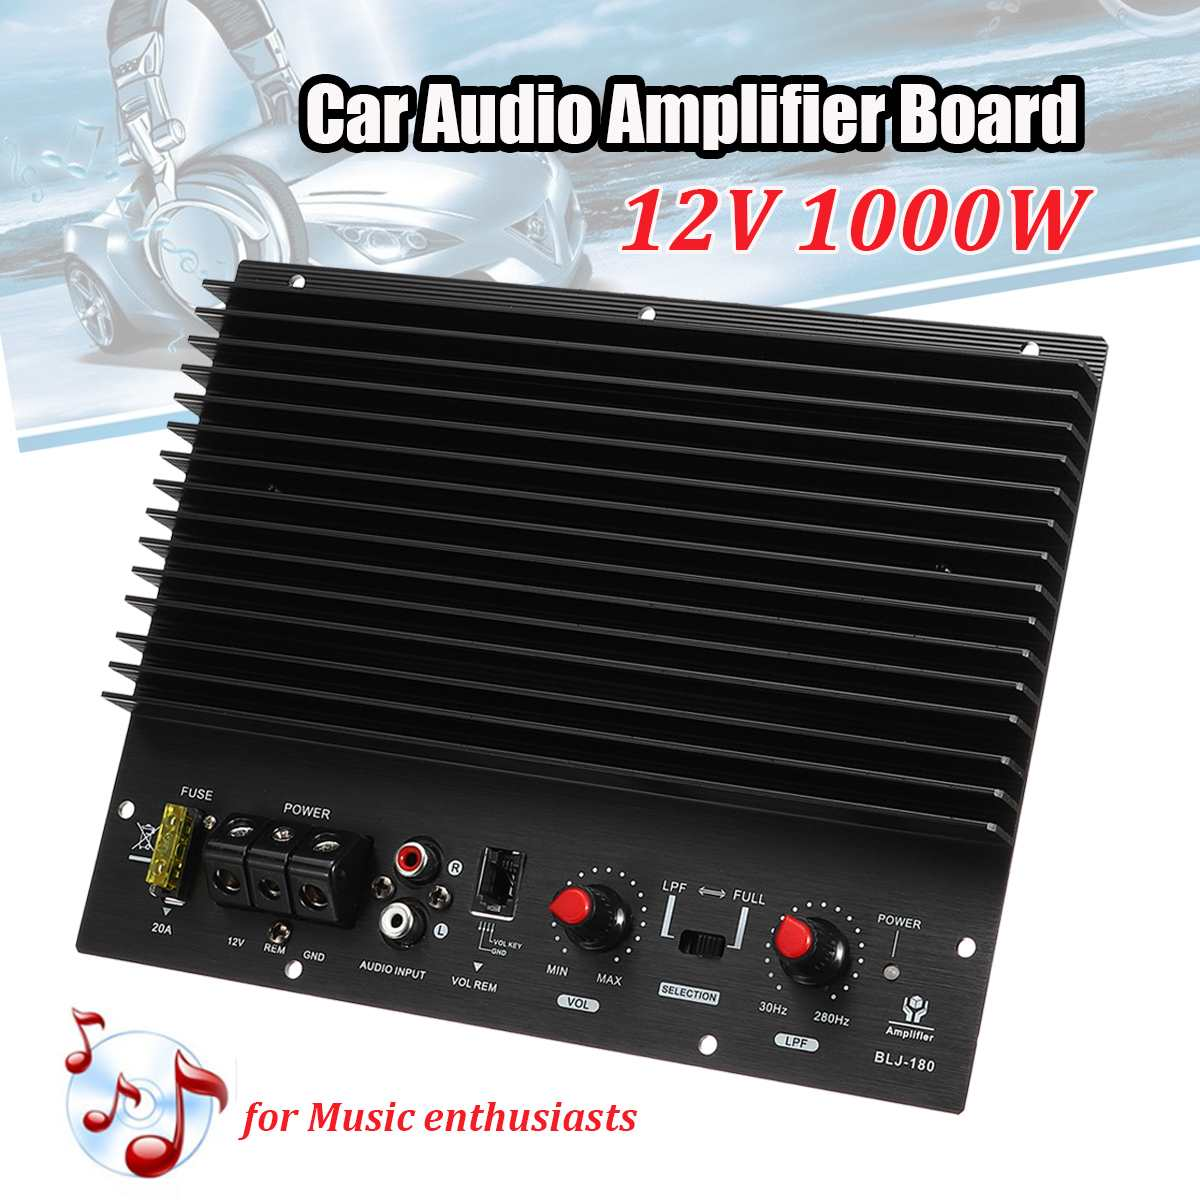 12V 1000W <font><b>Car</b></font> <font><b>Amplifier</b></font> Board Multichannel <font><b>Audio</b></font> <font><b>Amplifier</b></font> Subwoofer Powerful Bass <font><b>DIY</b></font> Amp Board Auto <font><b>Car</b></font> Music Player image